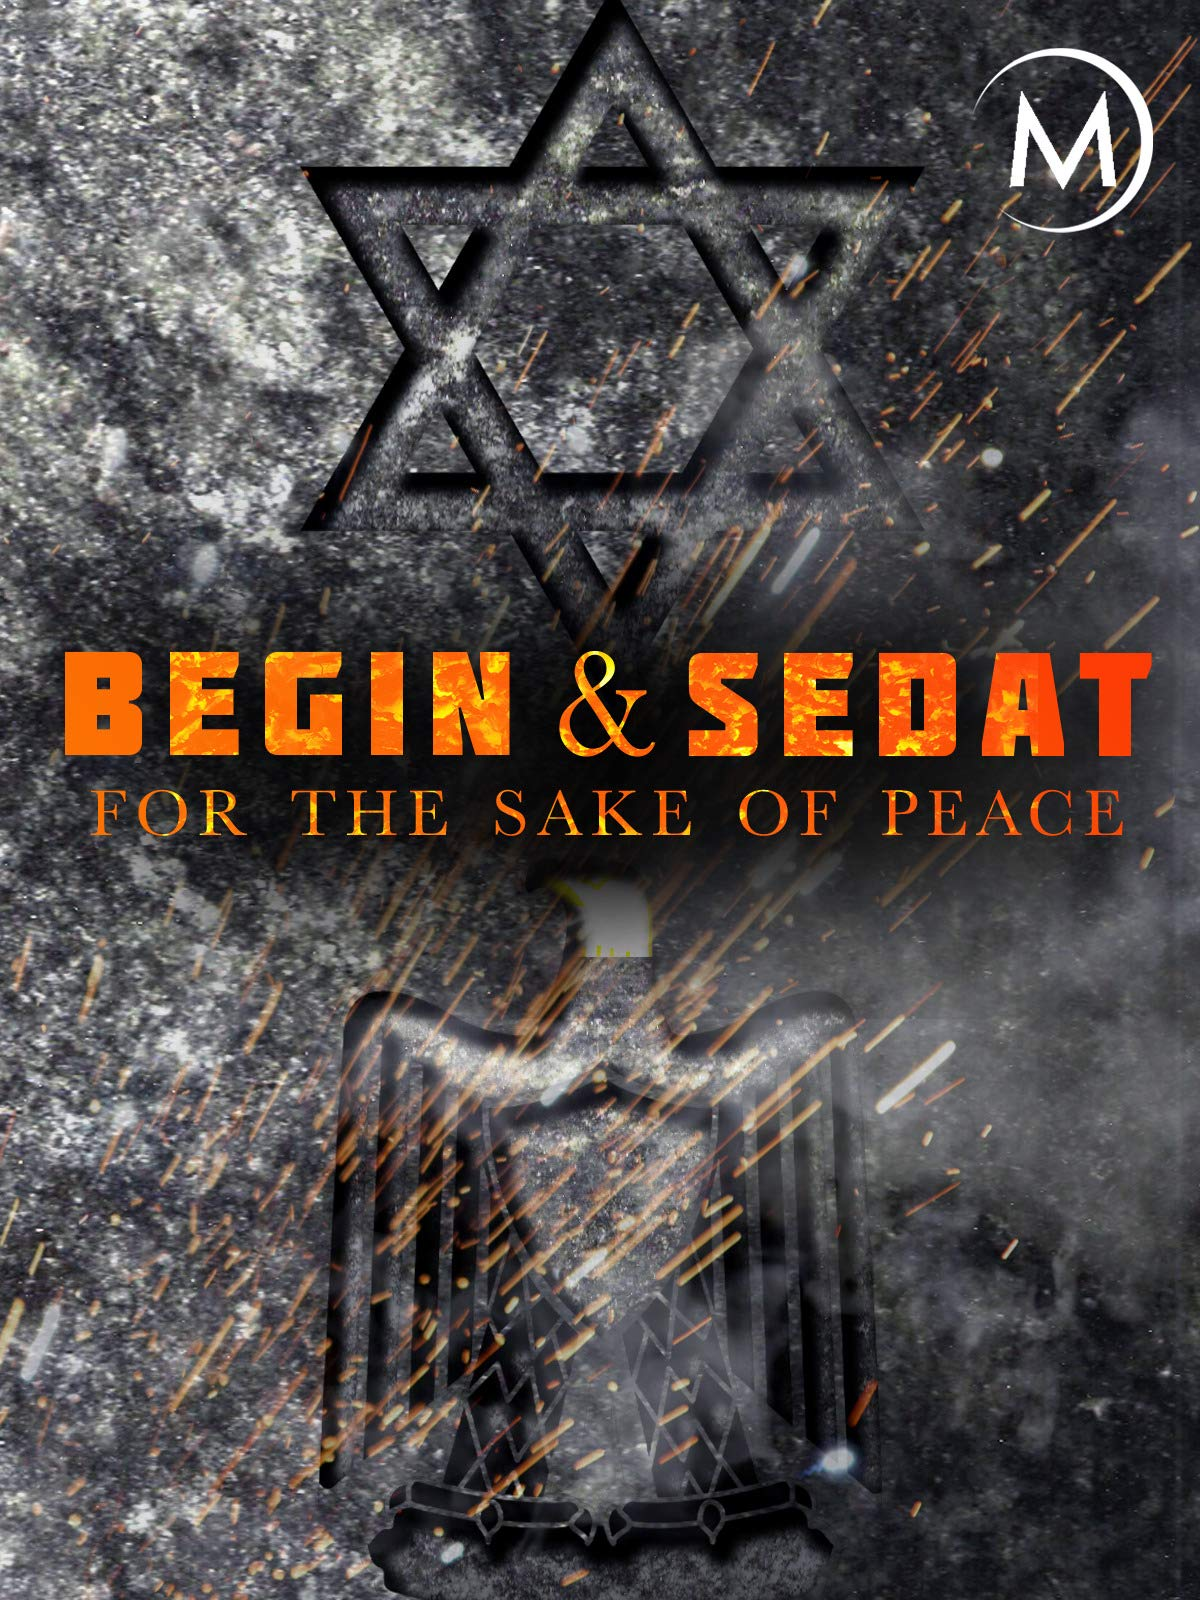 Begin and Sadat: For the Sake of Peace on Amazon Prime Video UK